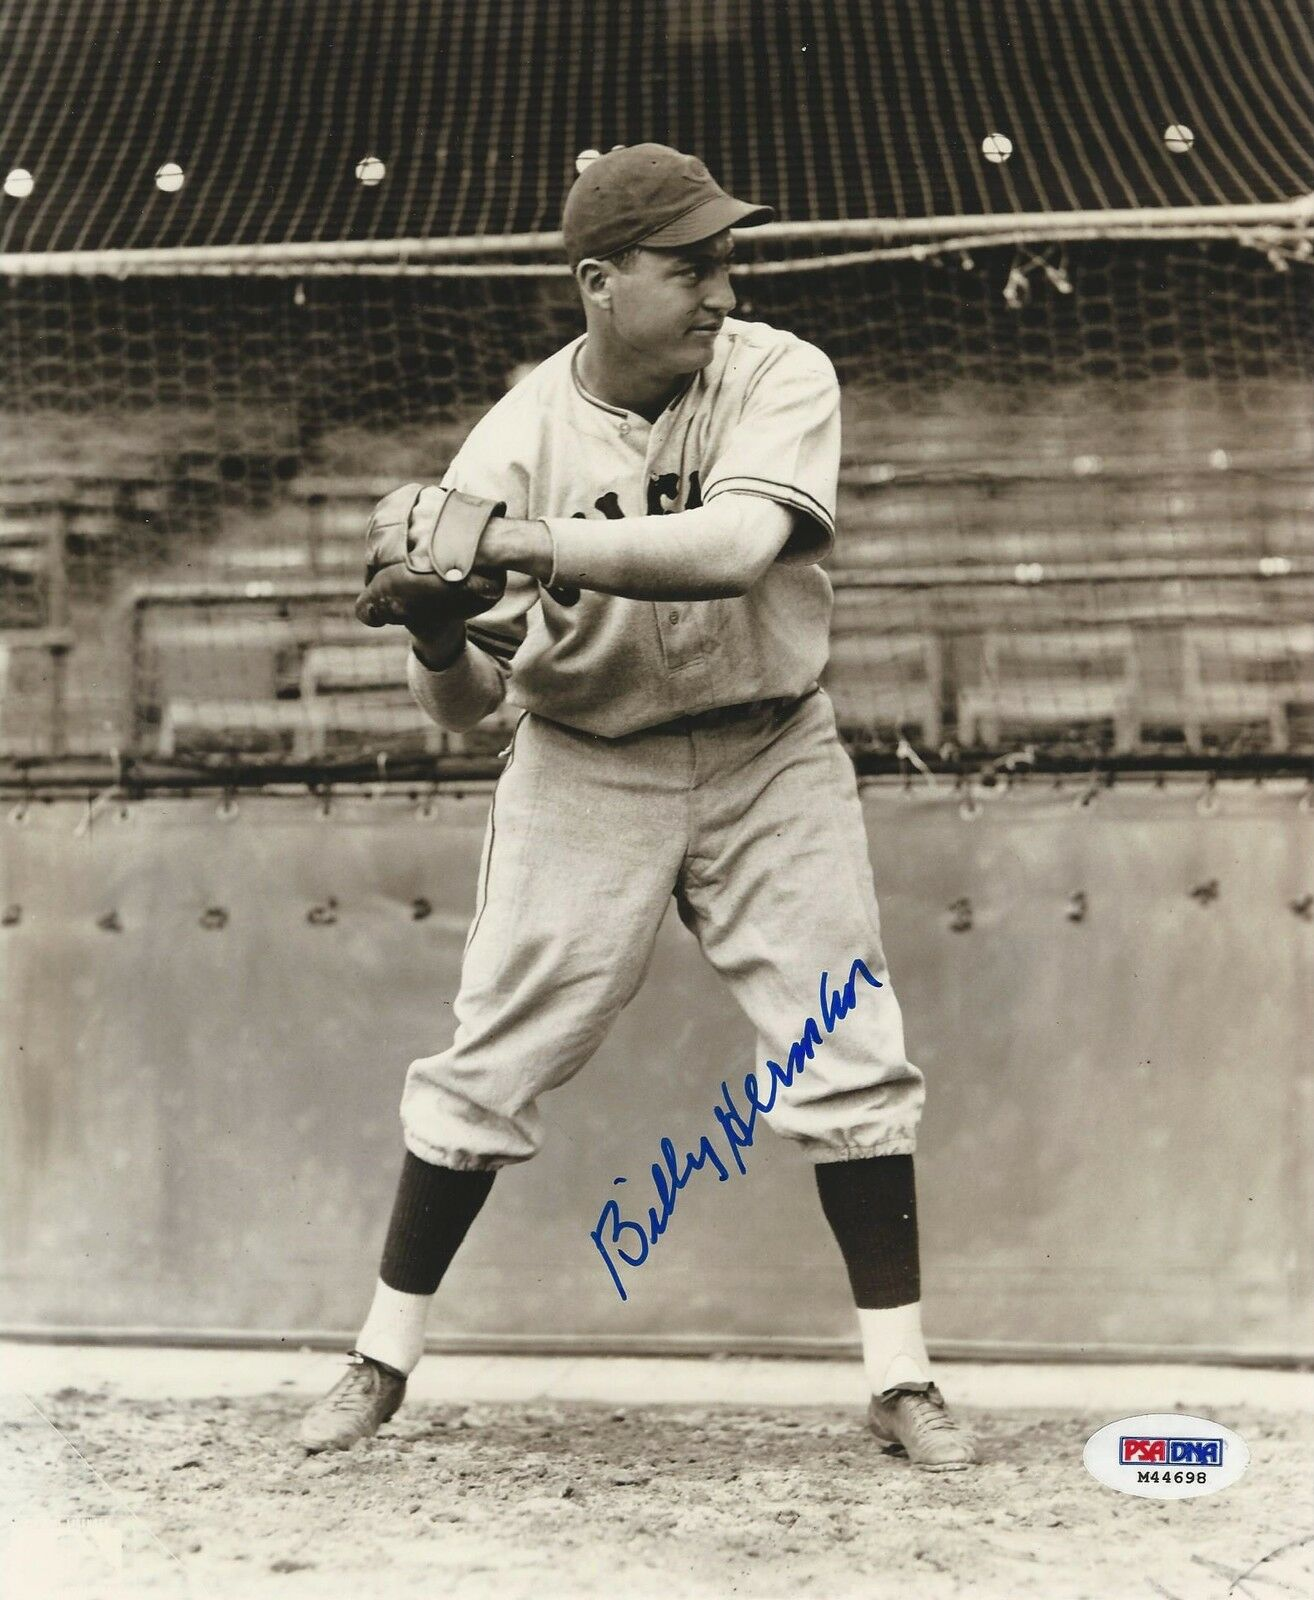 Billy Herman Brooklyn Dodgers signed 8x10 photo PSA/DNA #M44670